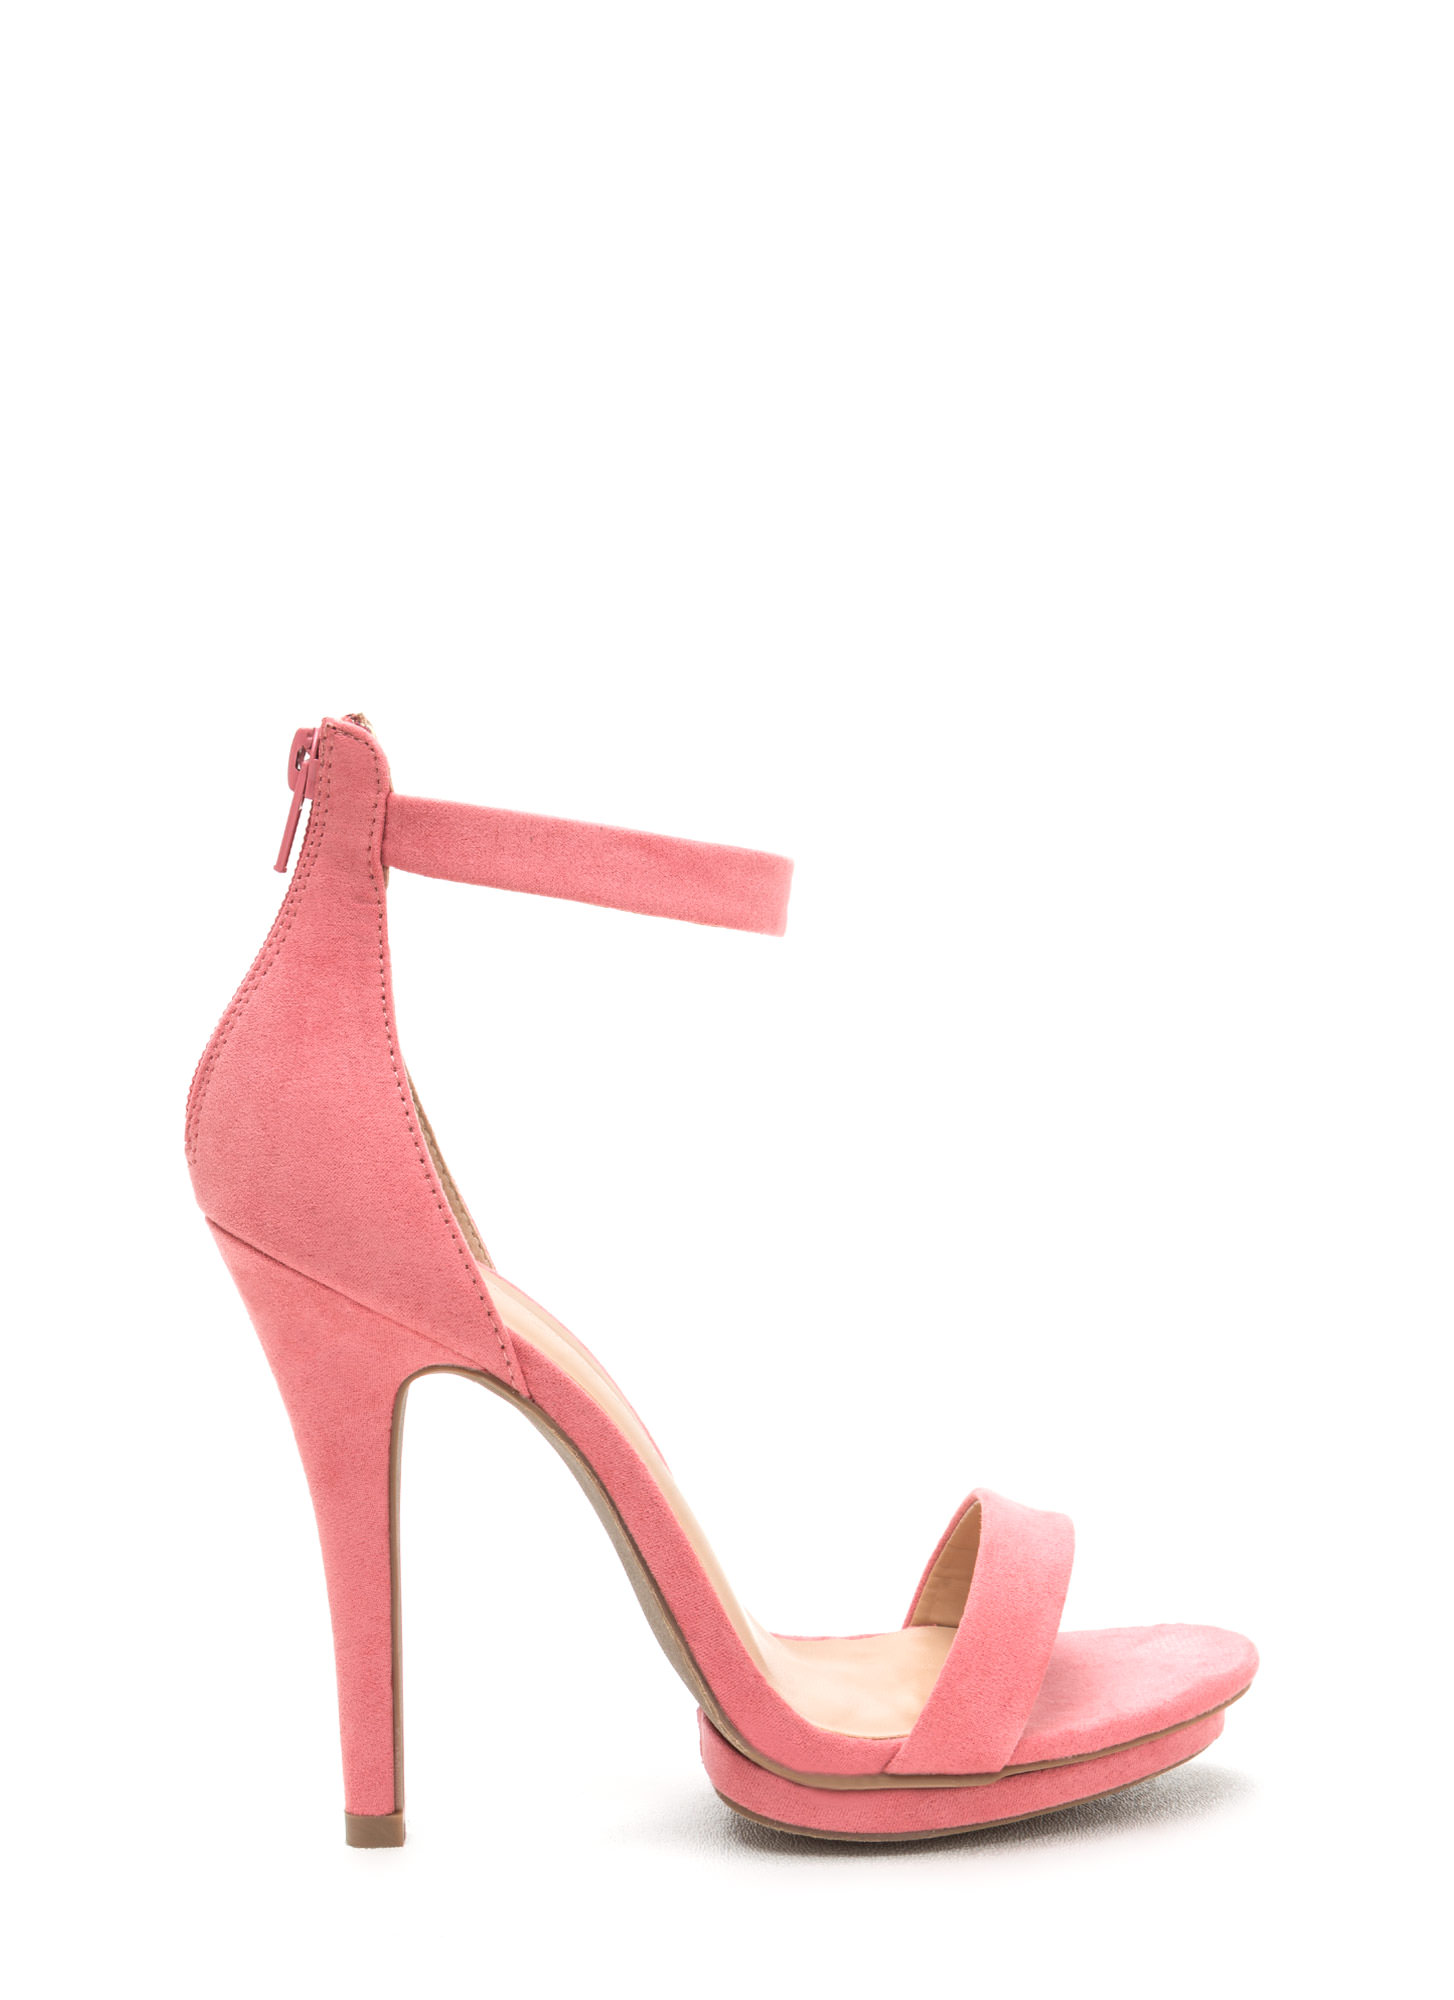 Living Single Stacked Platform Heels